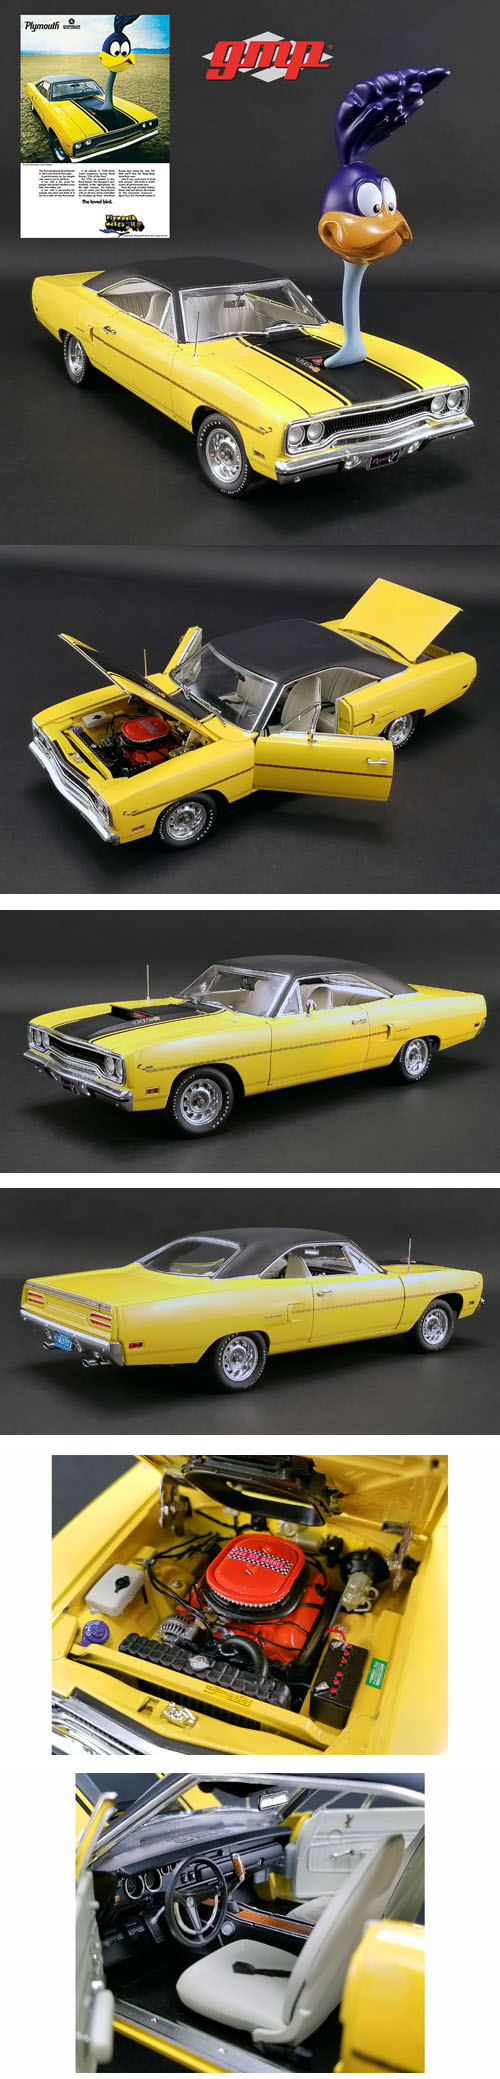 1970 Plymouth Road Runner,